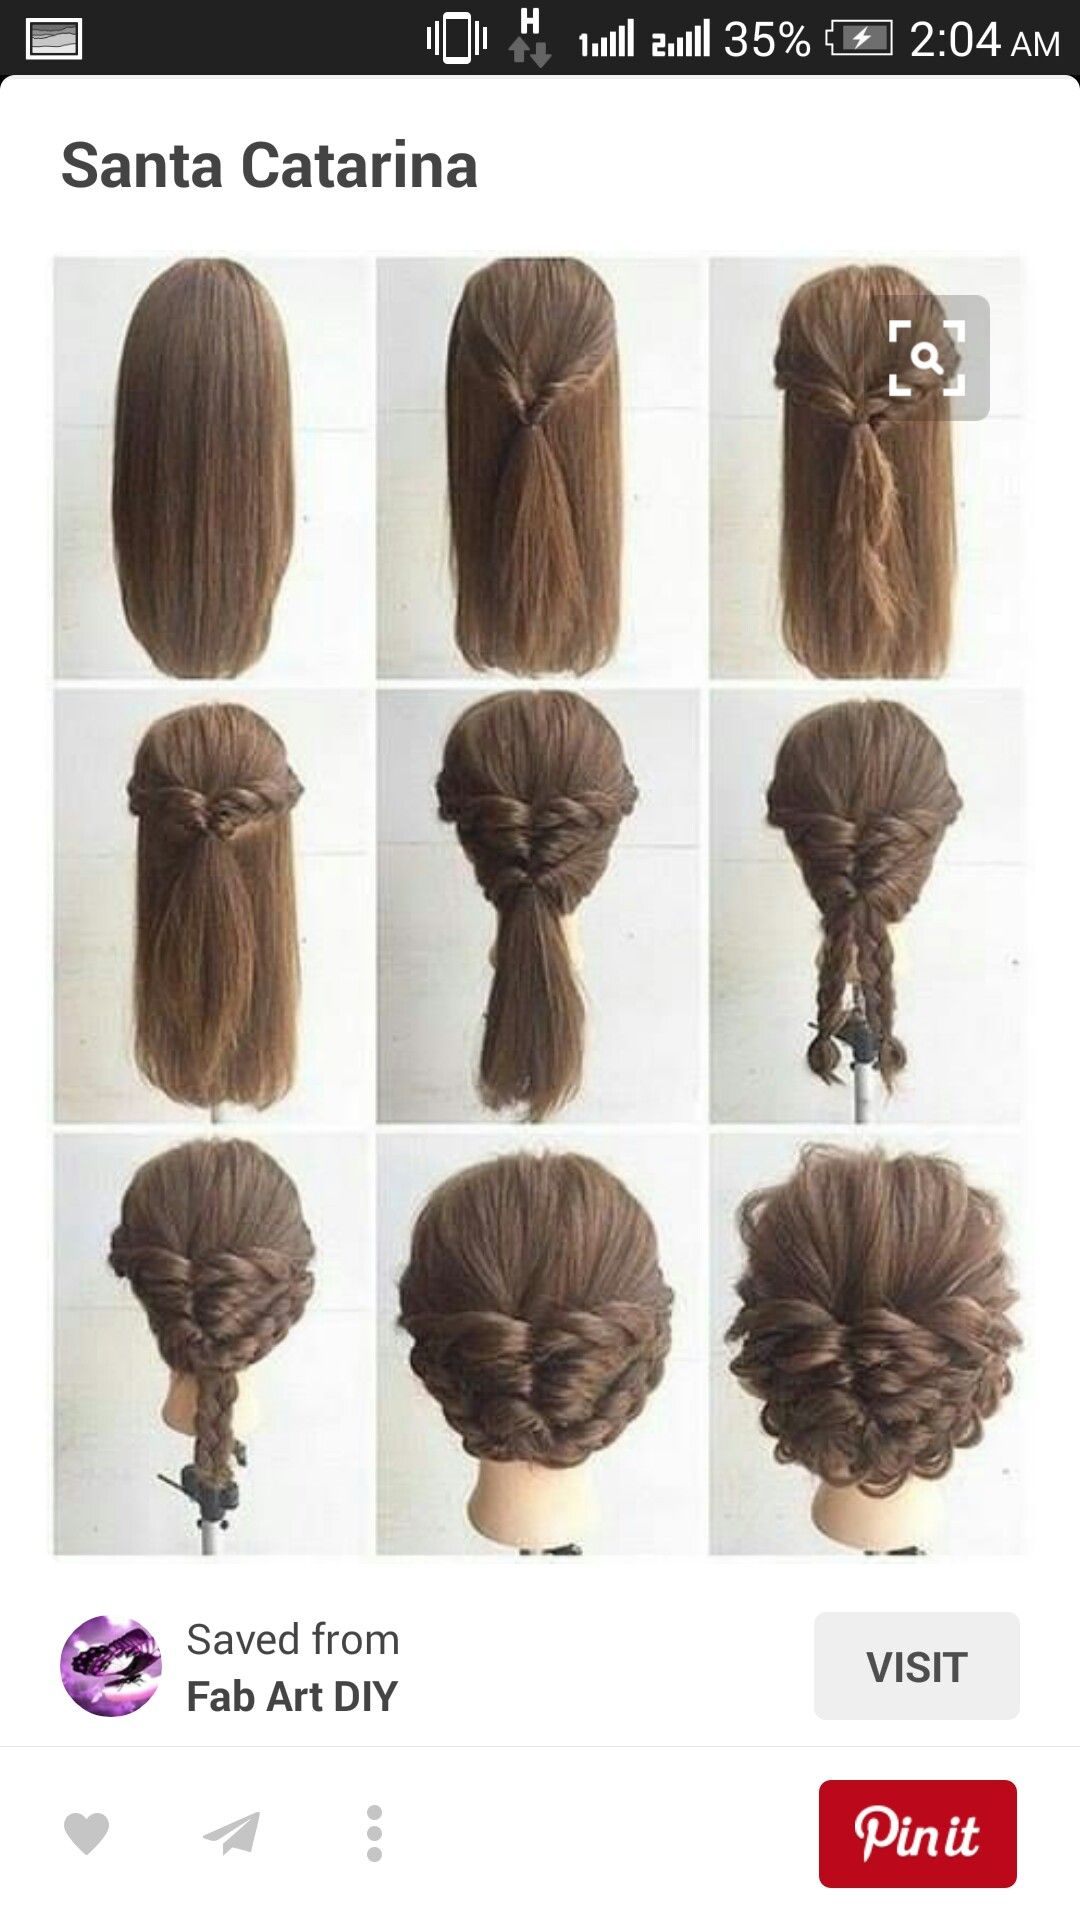 Pin by Christina Ghazaryan on hairstyles | Pinterest | Hair style ...